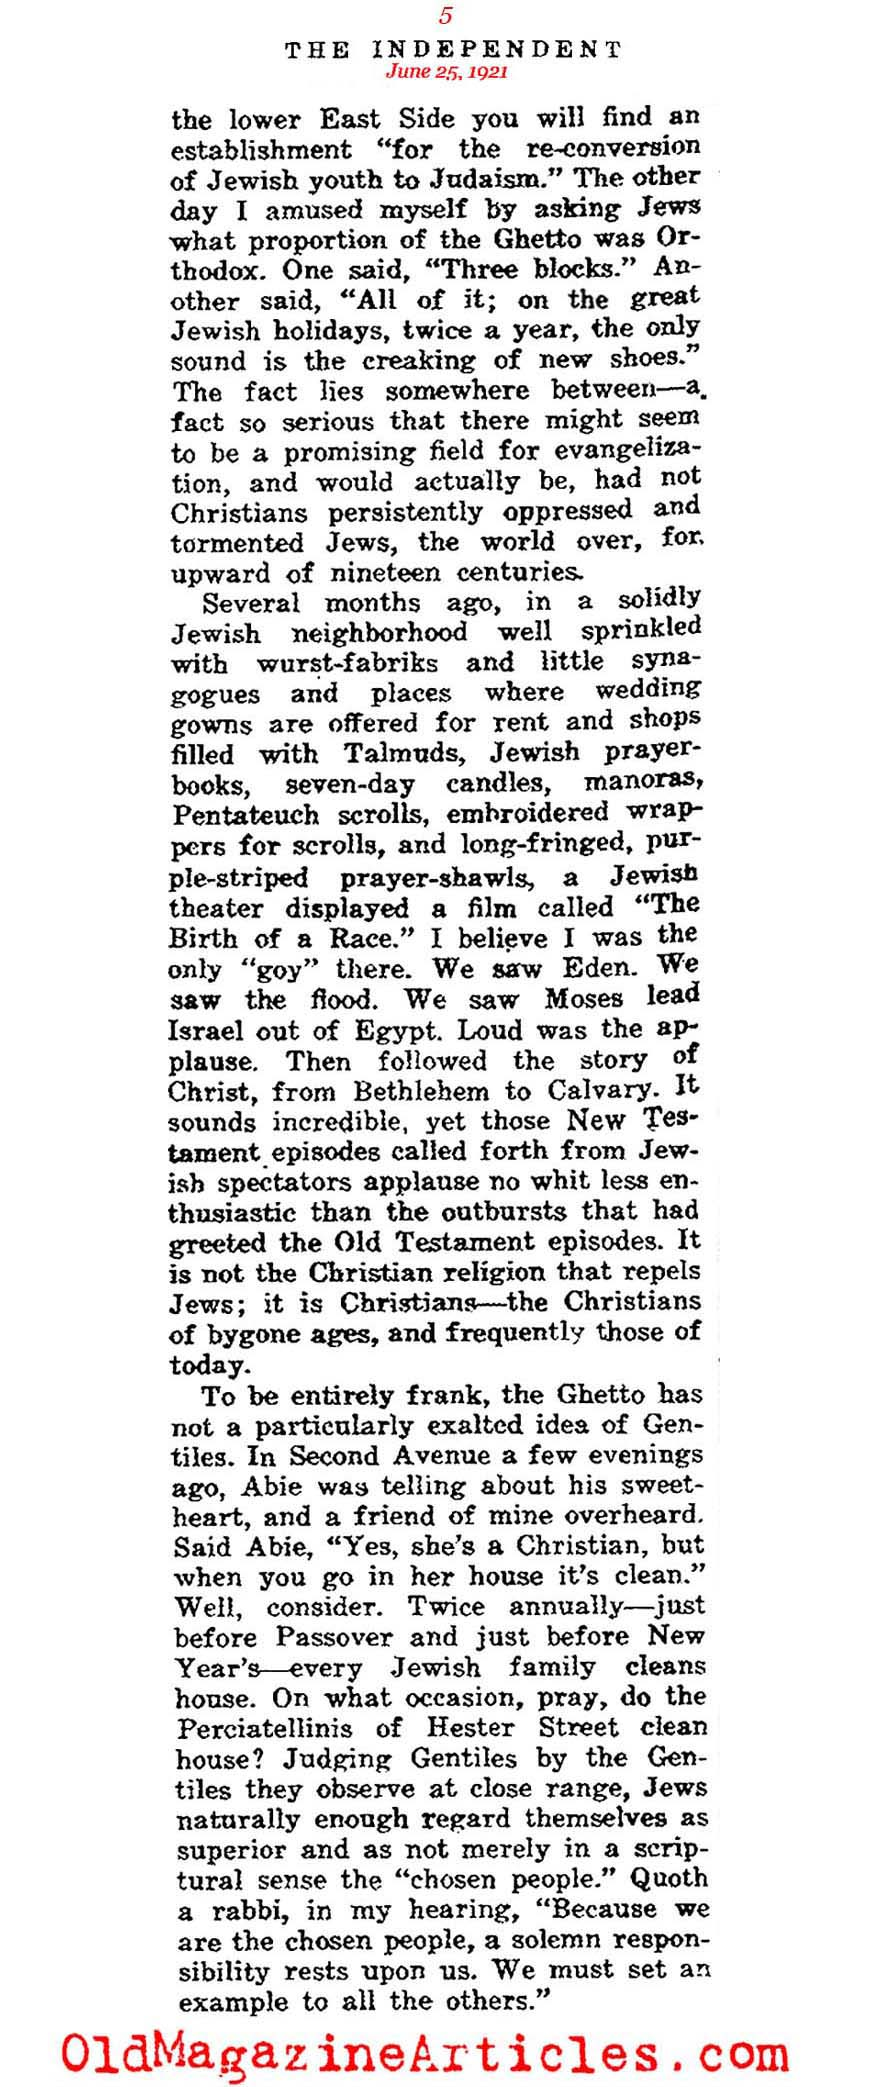 Jewish Population Growth in New York (The Independent, 1921)